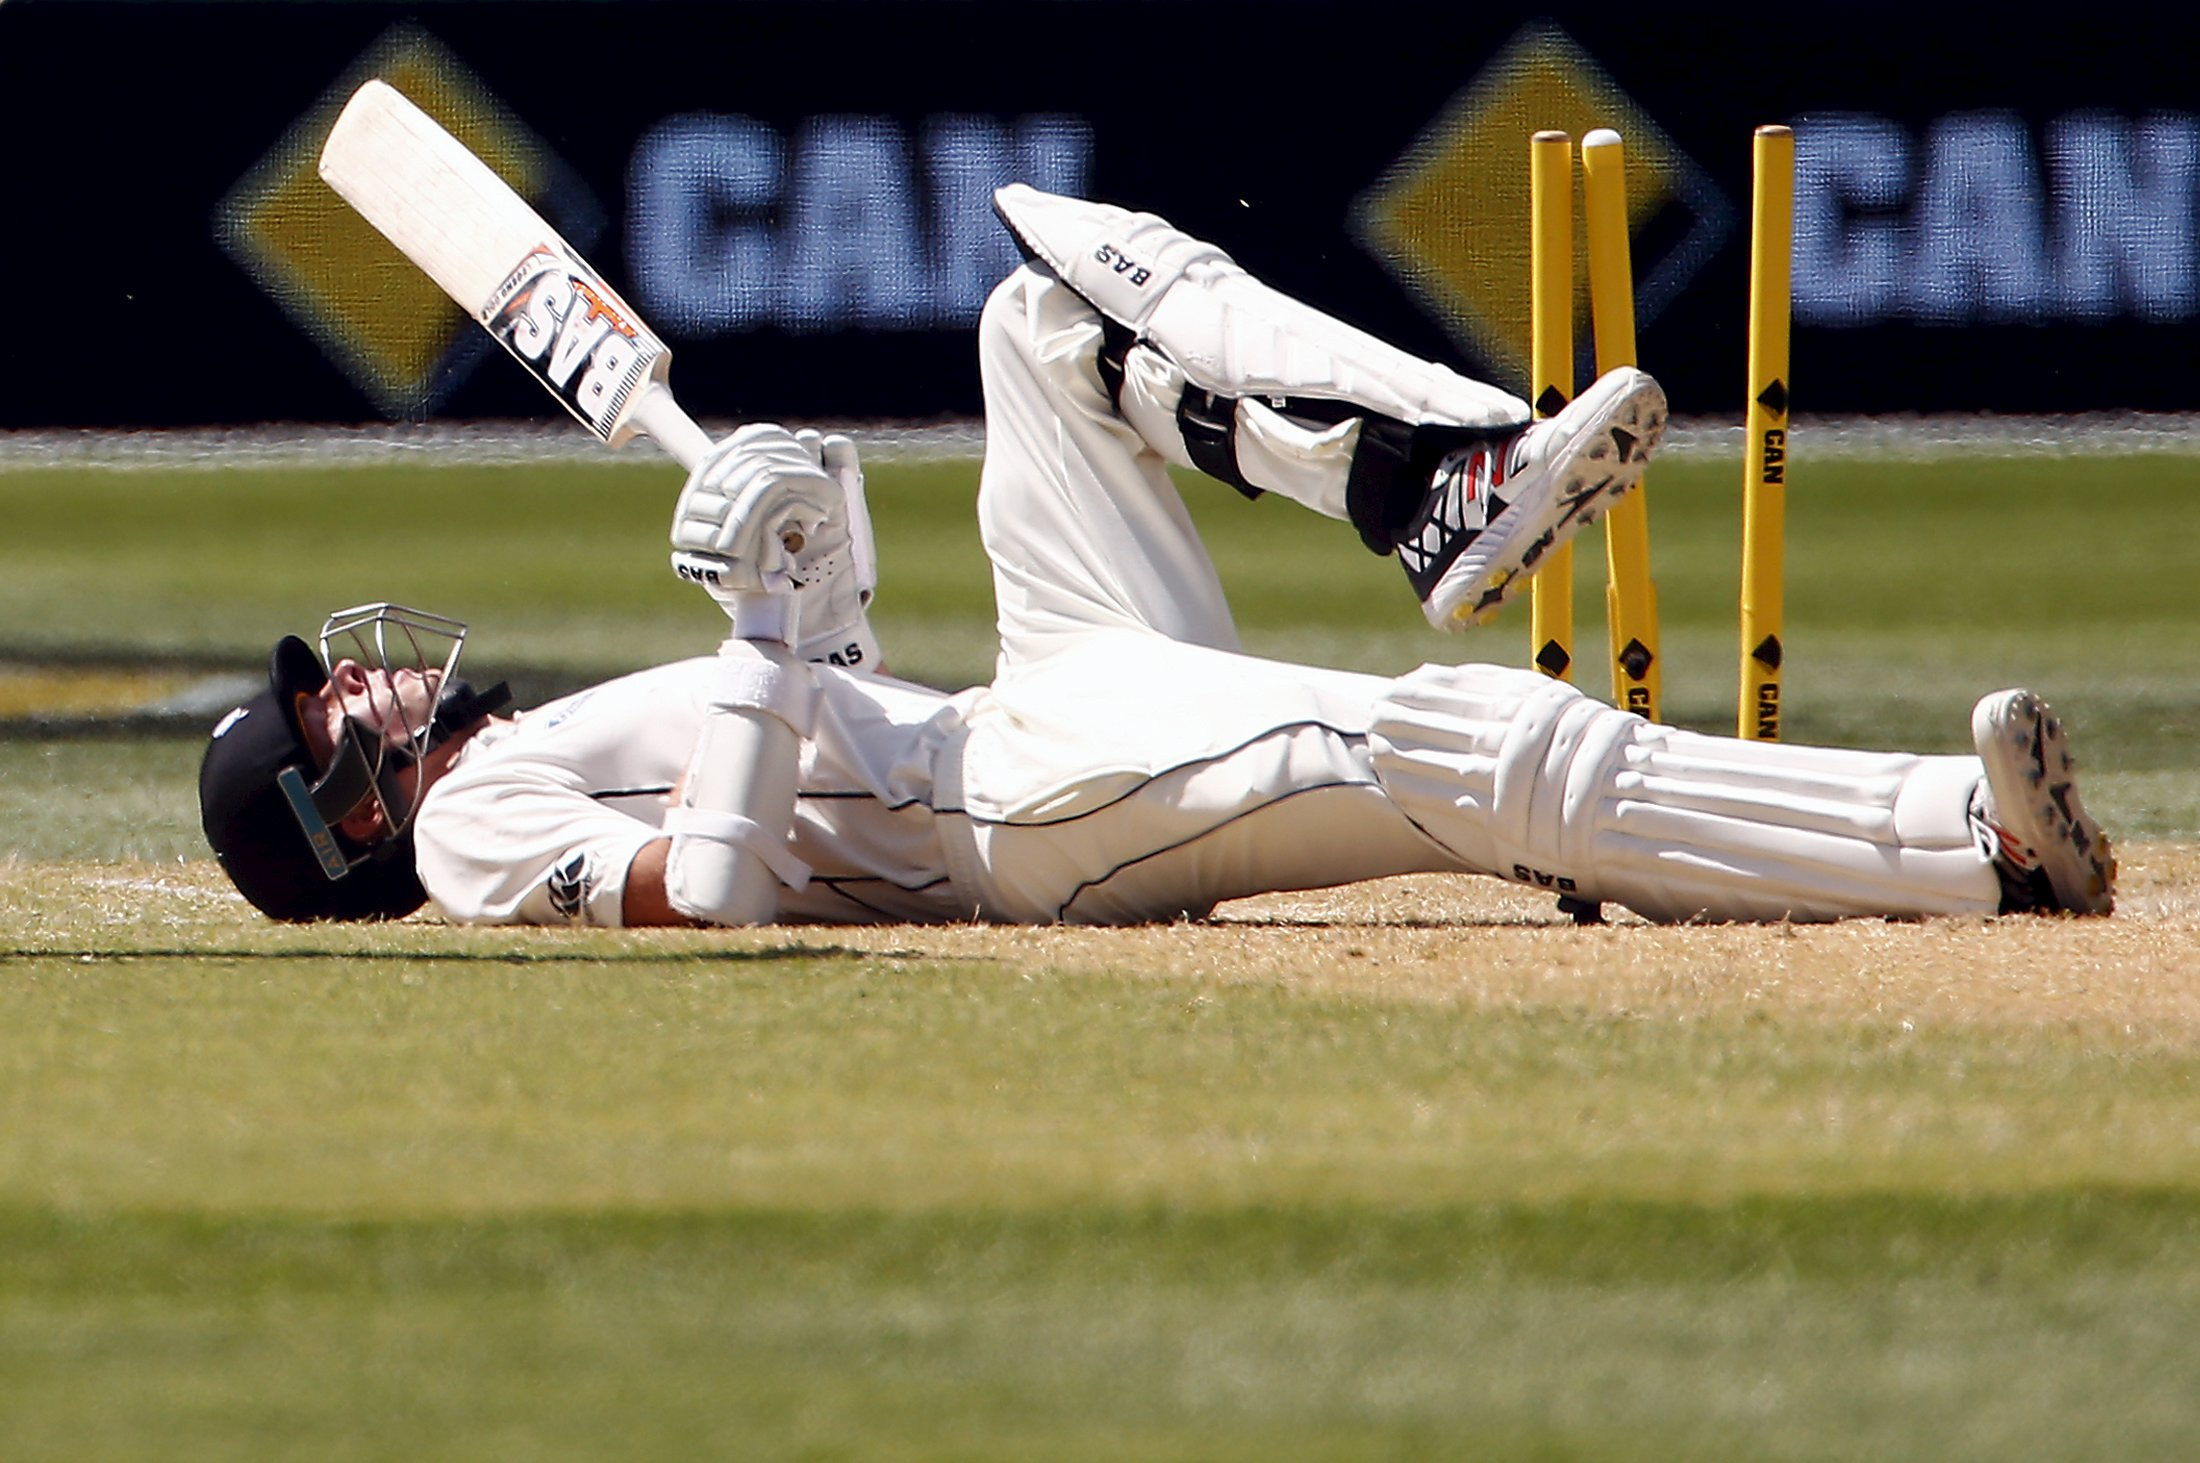 New Zealand's Mitchell Santner lies on the pitch after being stumped by Australia's wicketkeeper Peter Nevill for 45 runs during the third day of the third cricket test match at the Adelaide Oval, in South Australia, November 29, 2015. Photo: Reuters